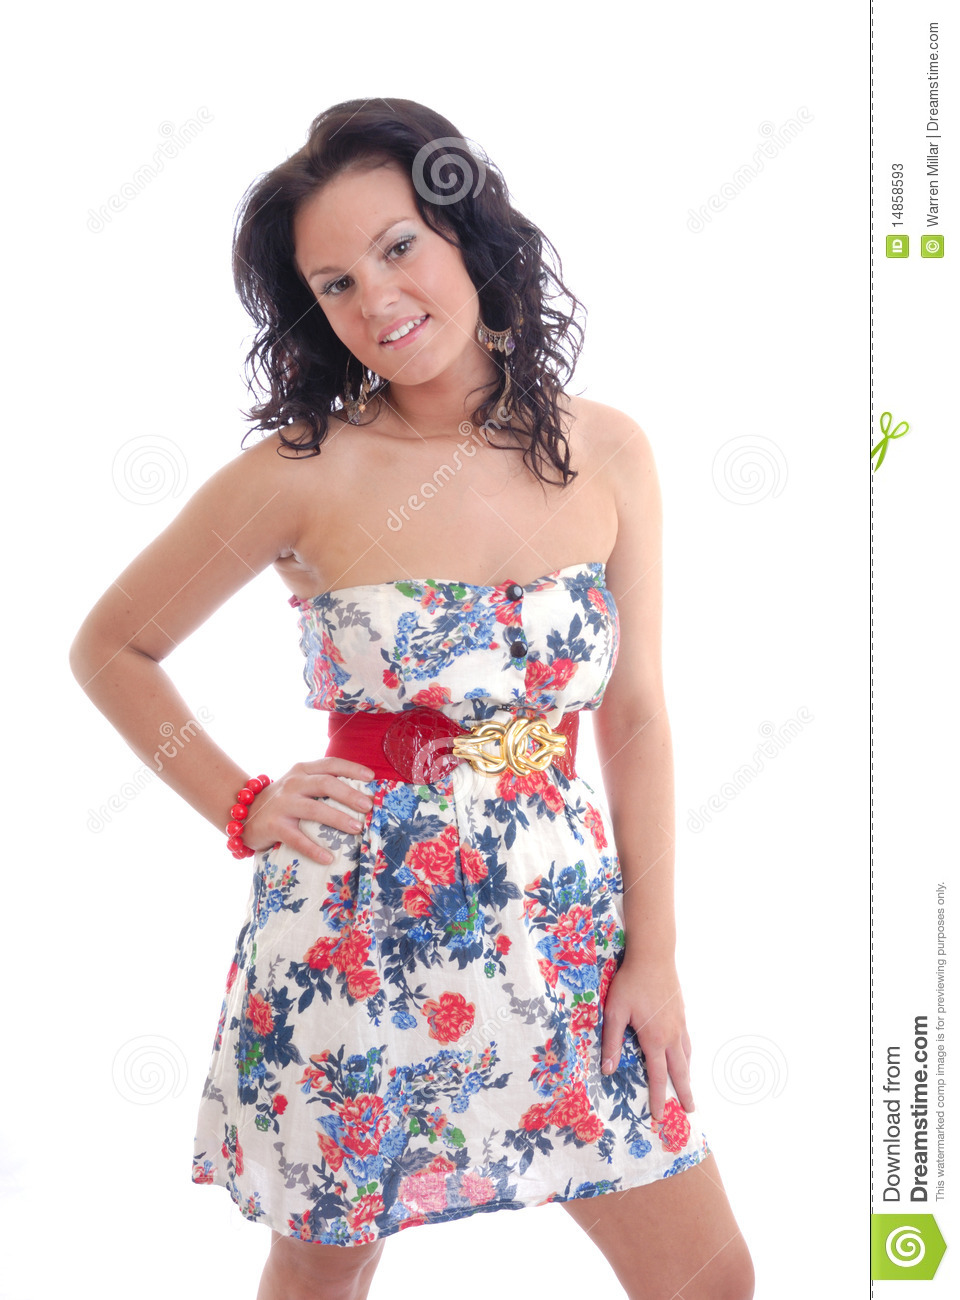 Cute young girl in floral dress